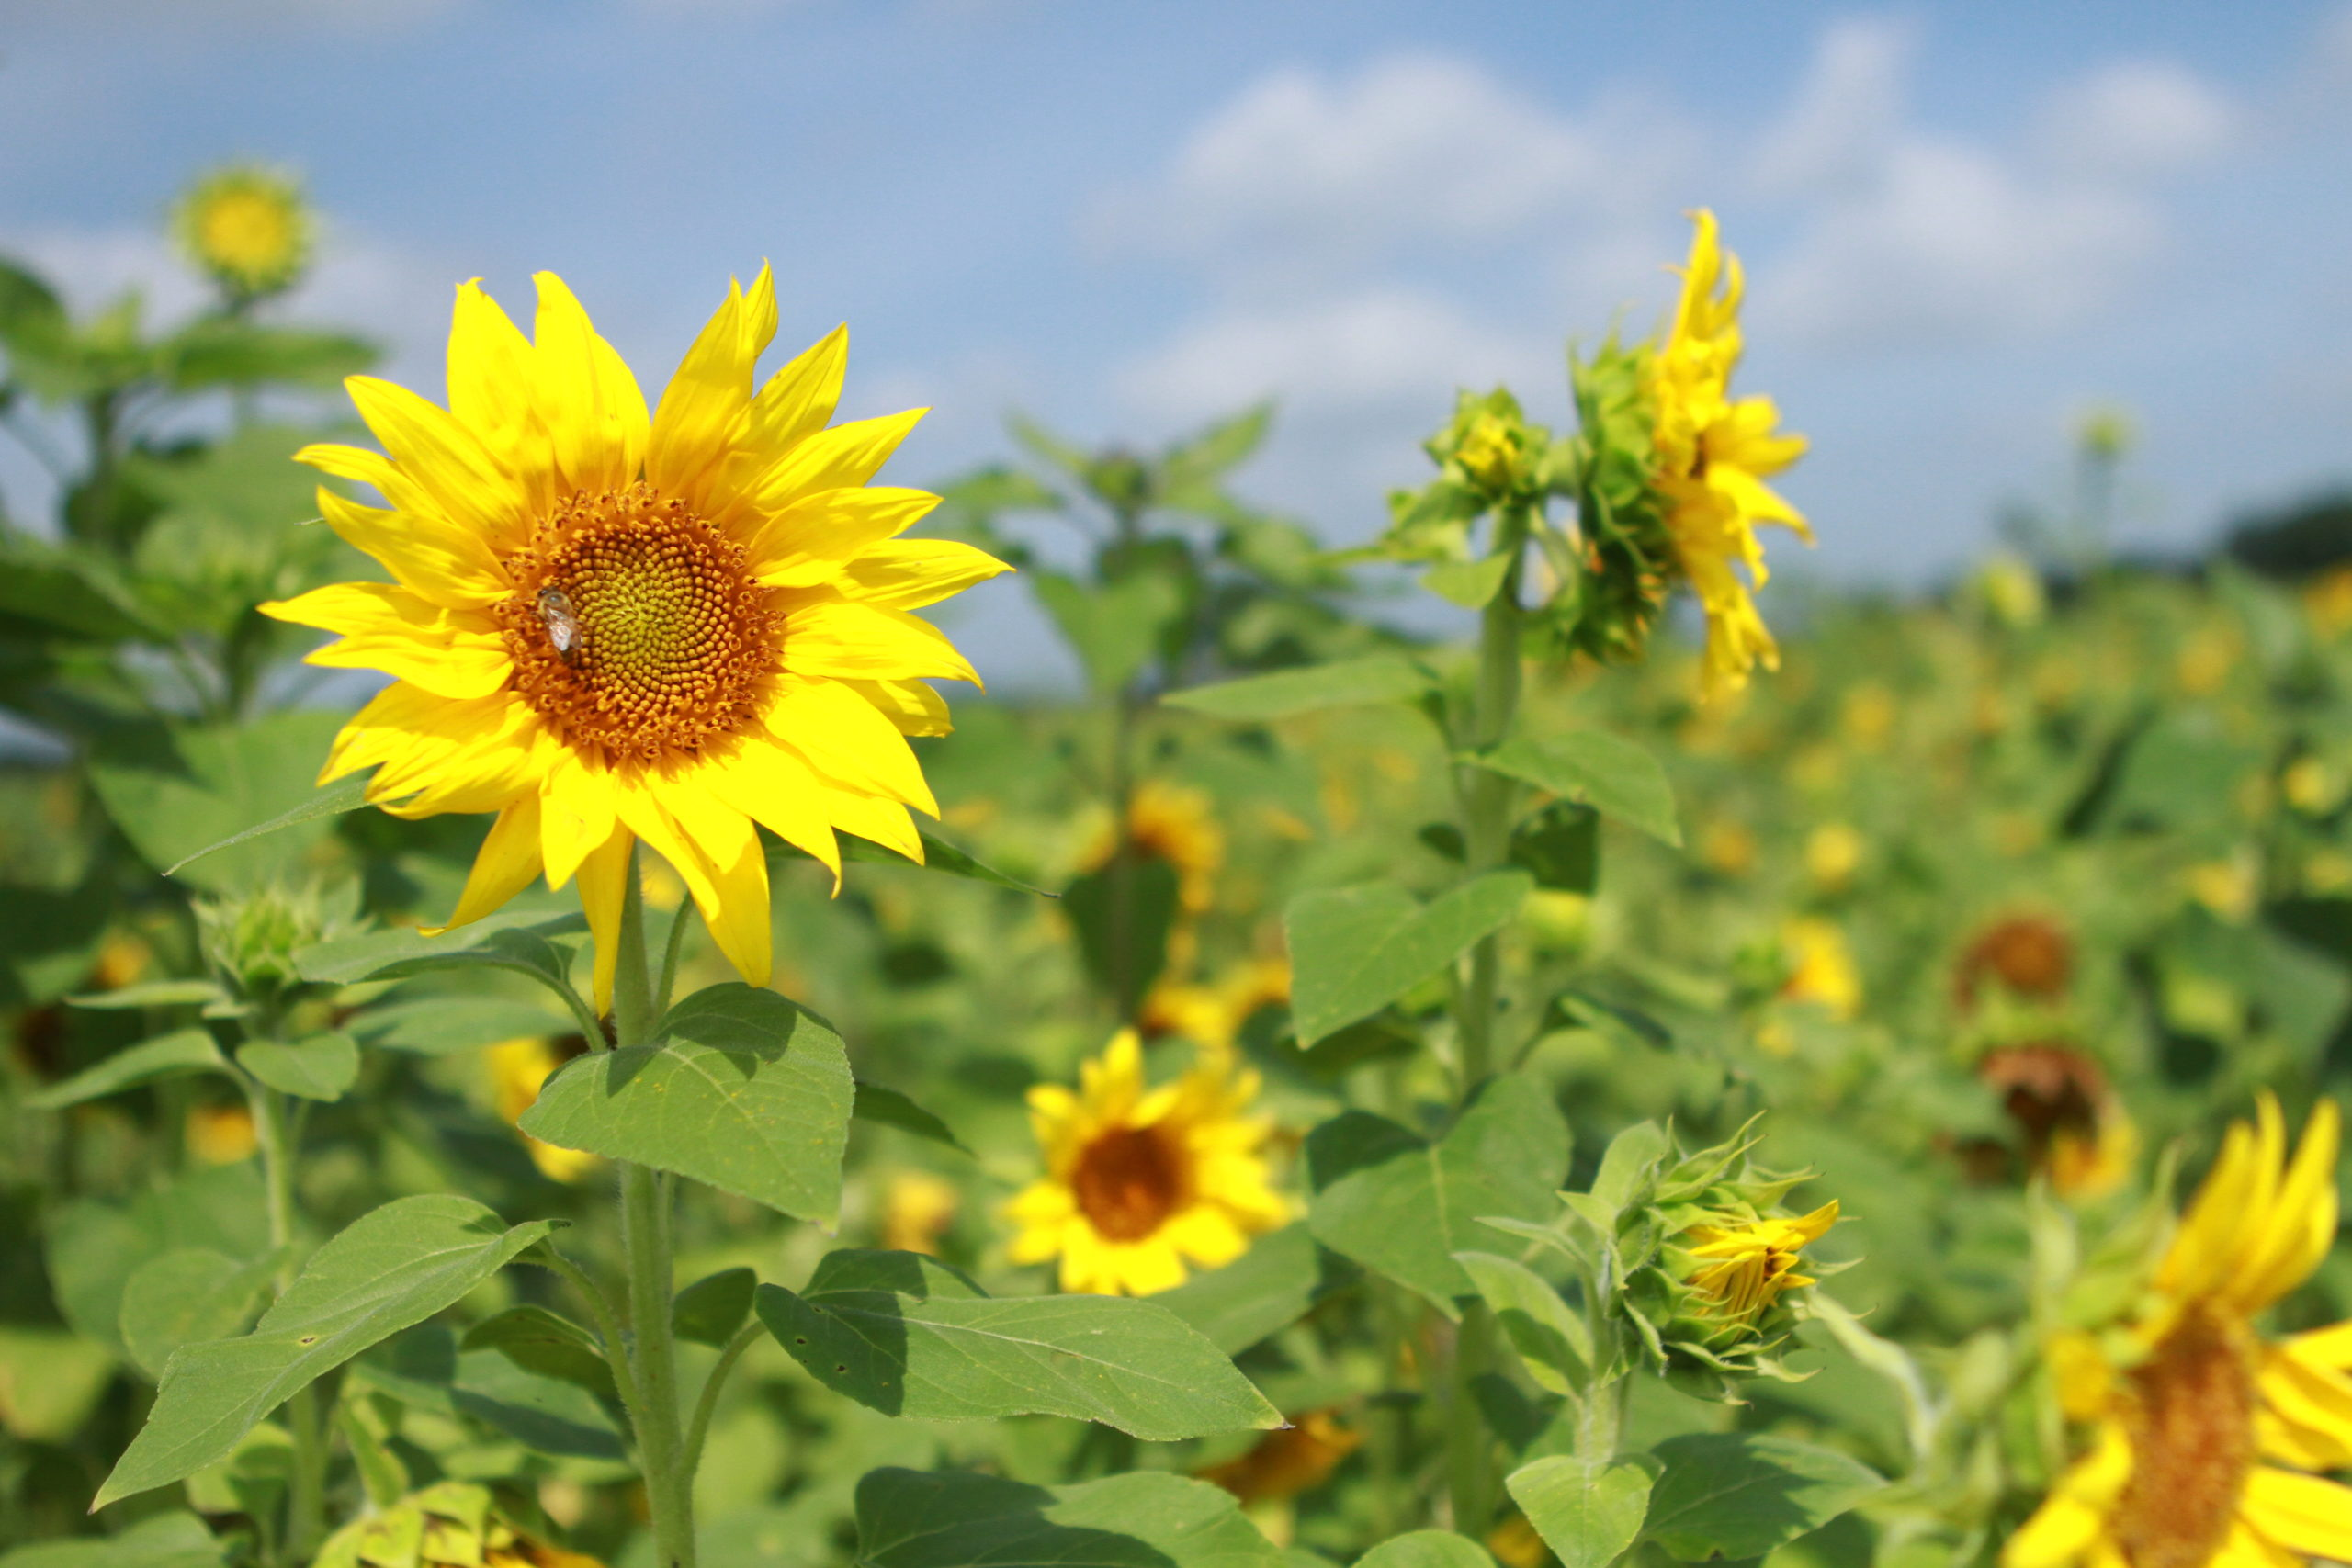 Ever Wanted a Sunflower Garden?